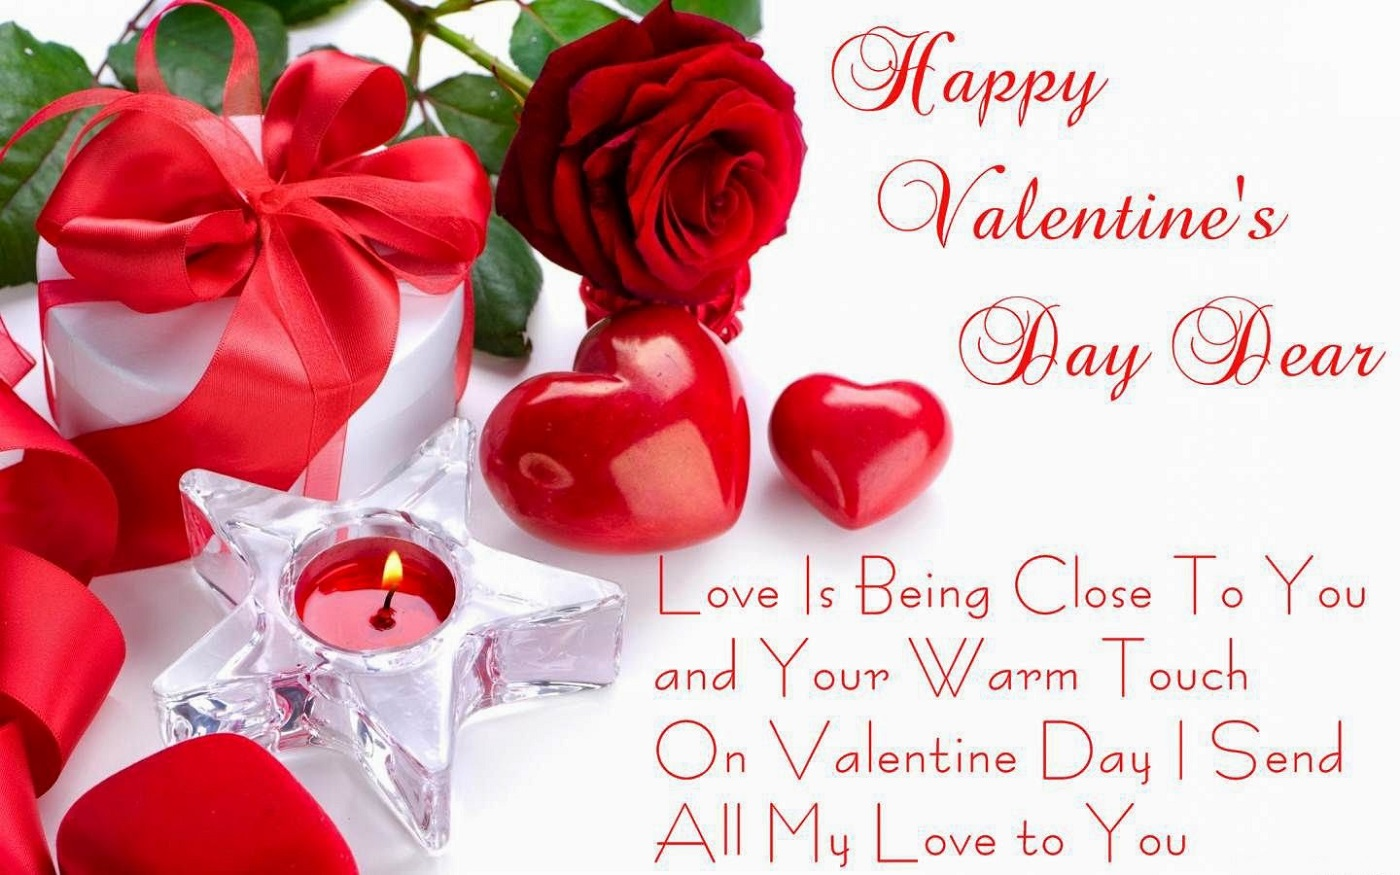 Valentines Quotes For Her Happy Valentines Day Images  Happy Valentines Day 2018 Quotes